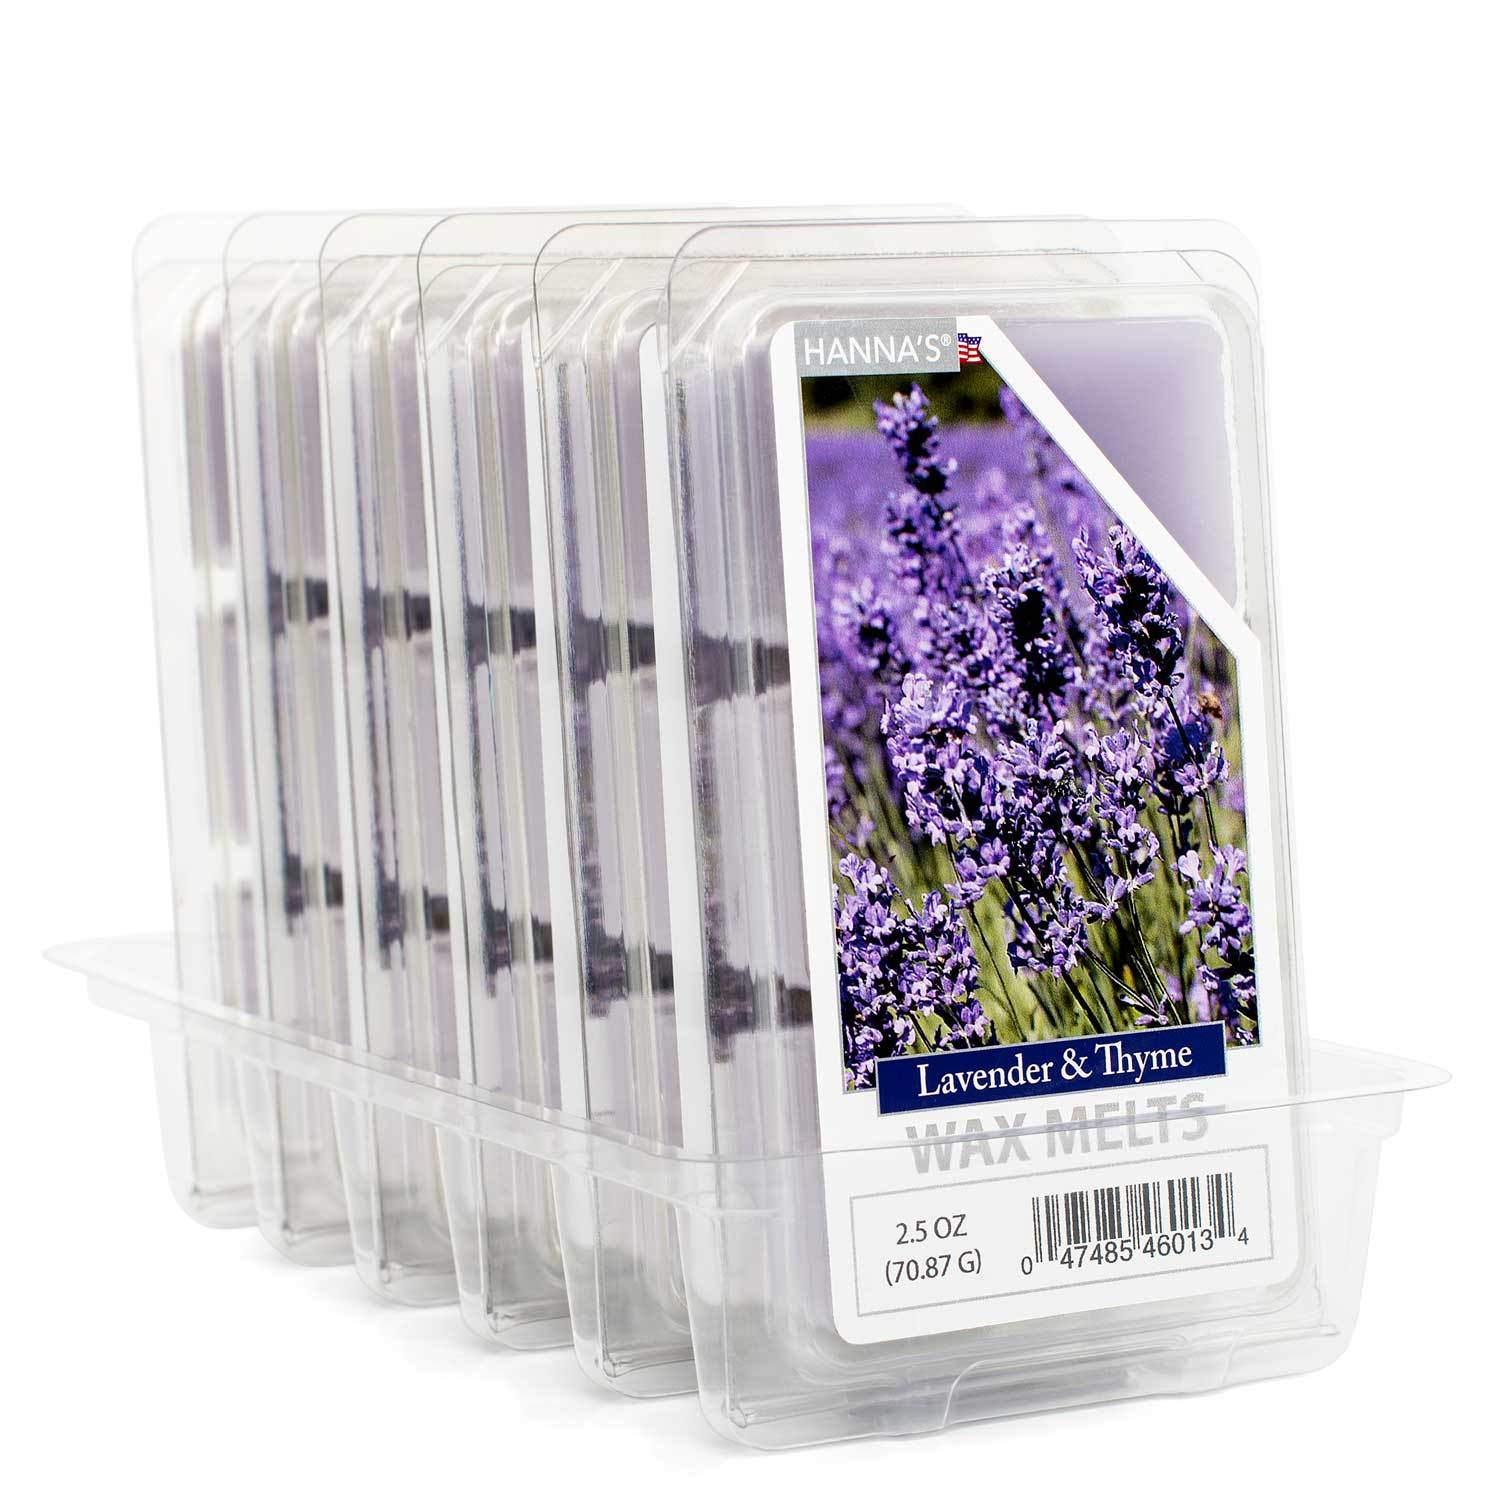 Lavender Thyme Wax Melts 6 Pack Melts Candlemart.com $ 12.99